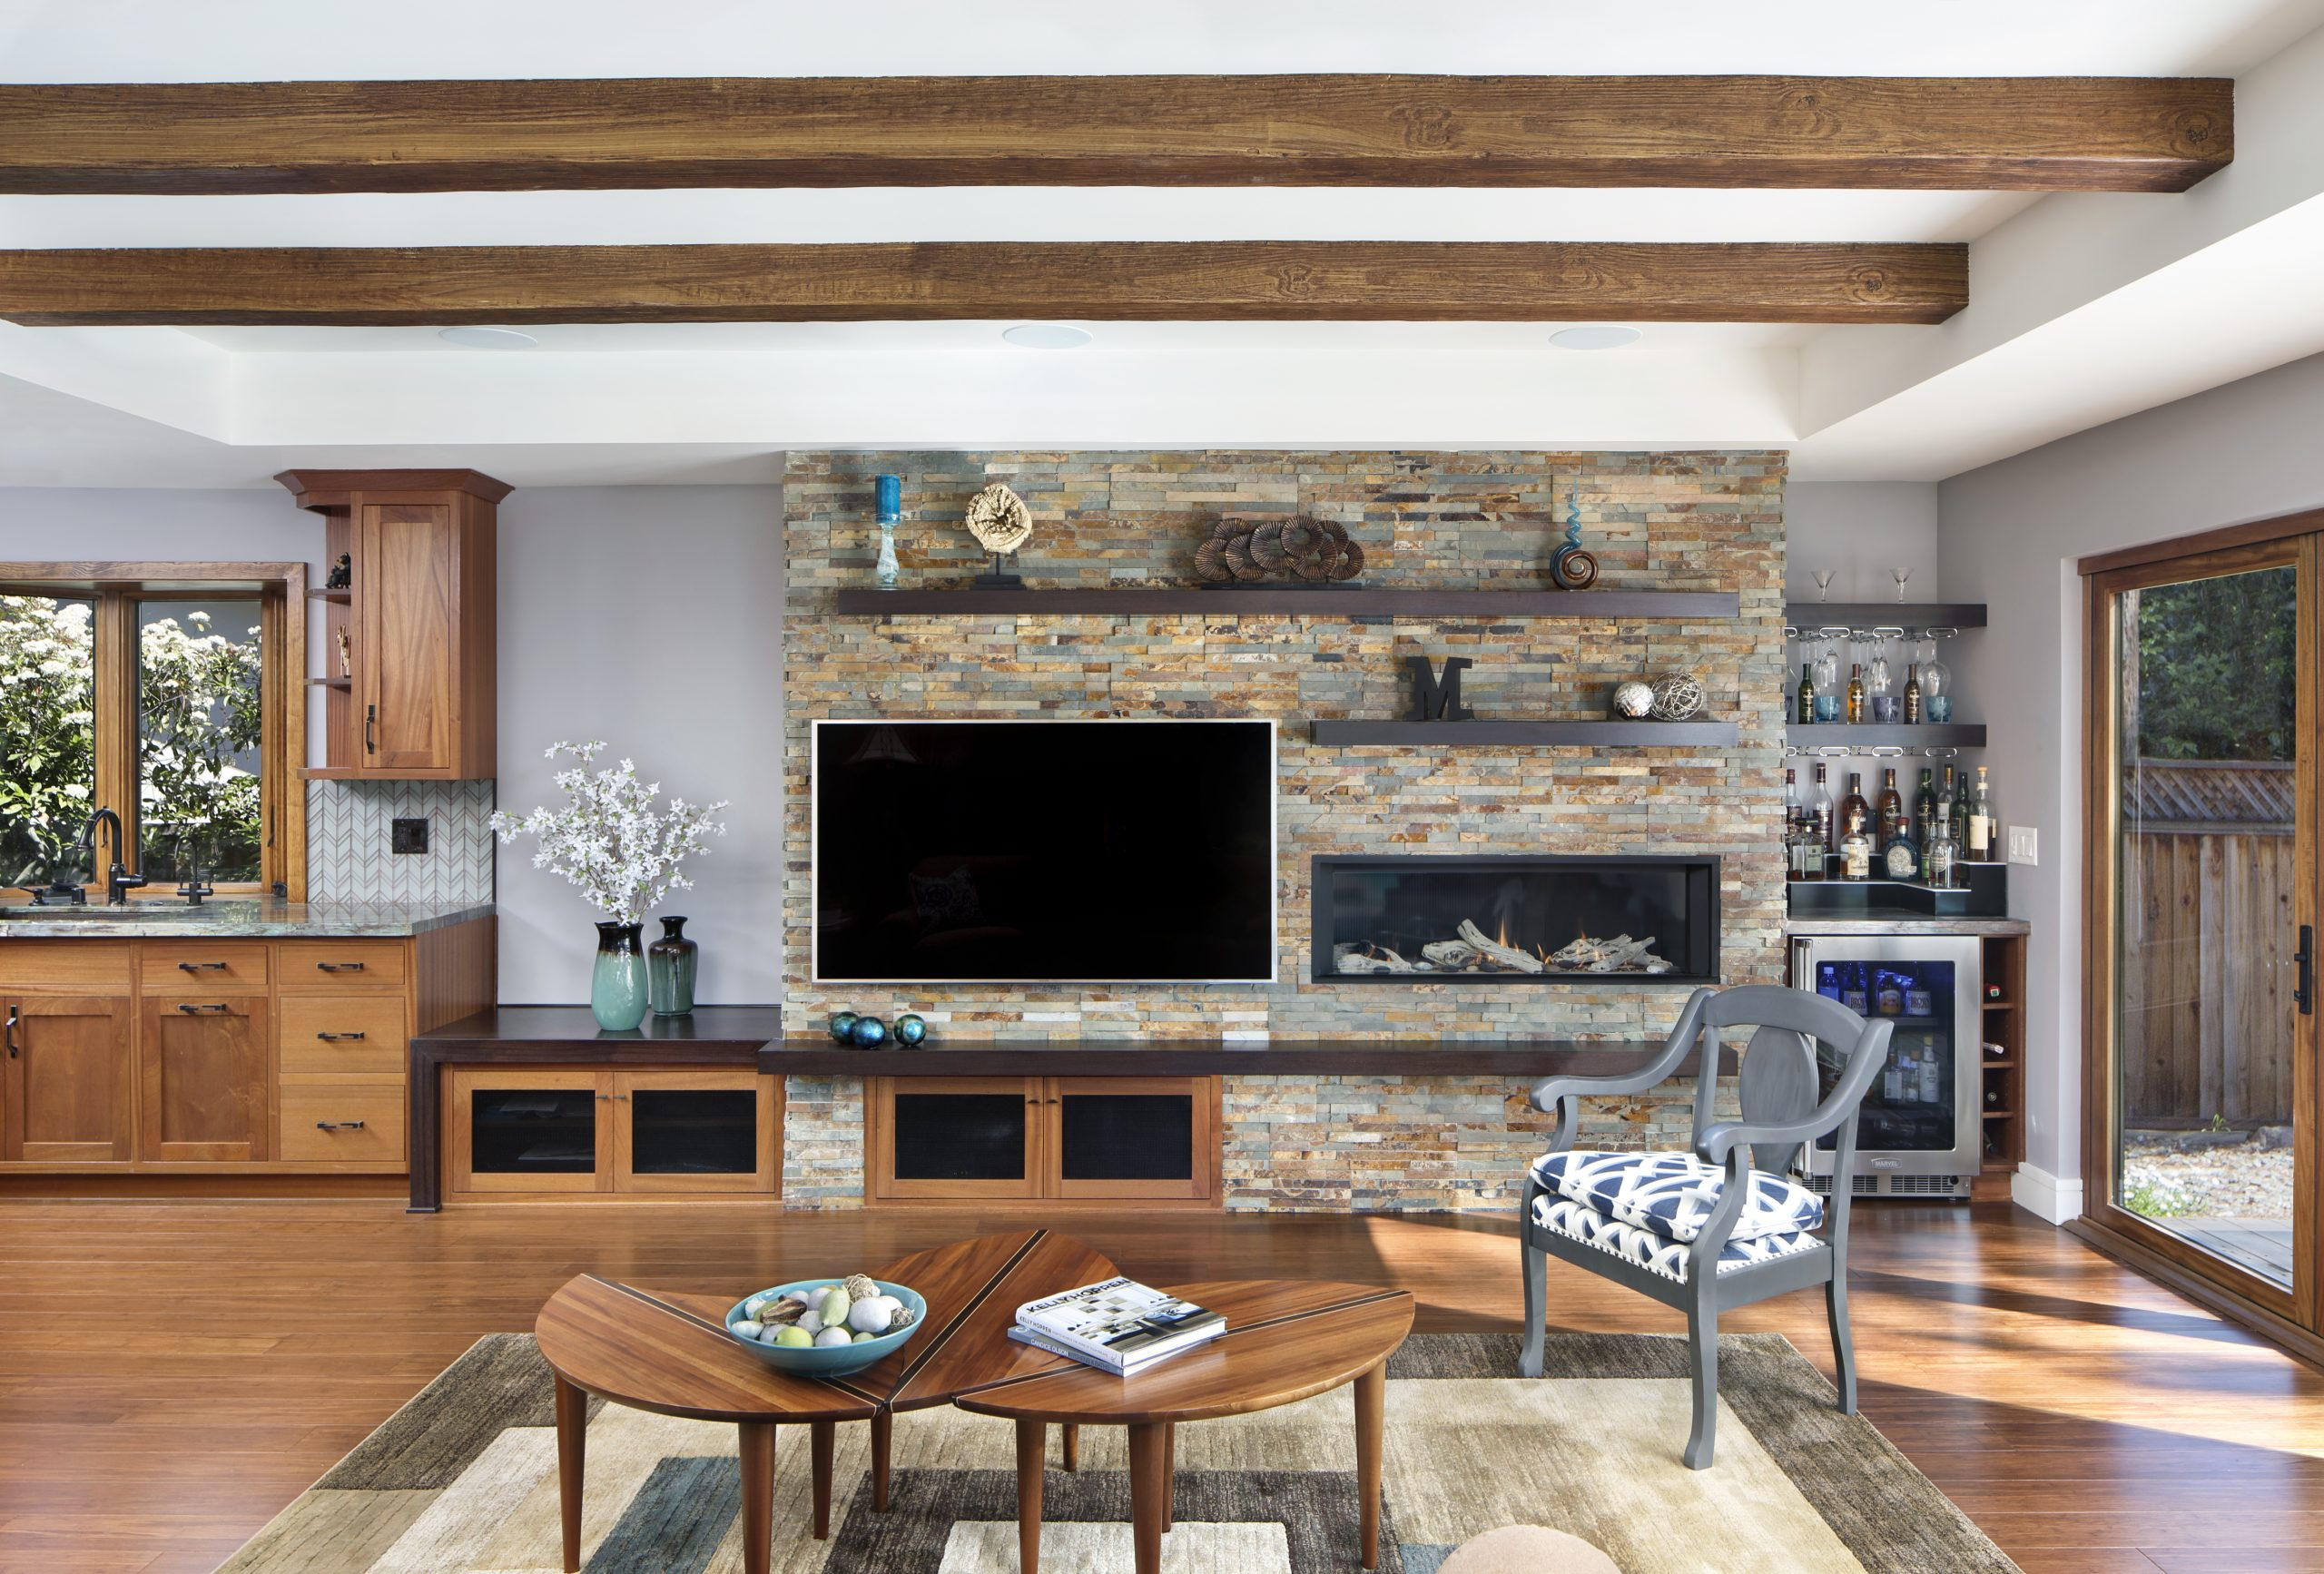 A modern living room with a built in wine refrigerator.